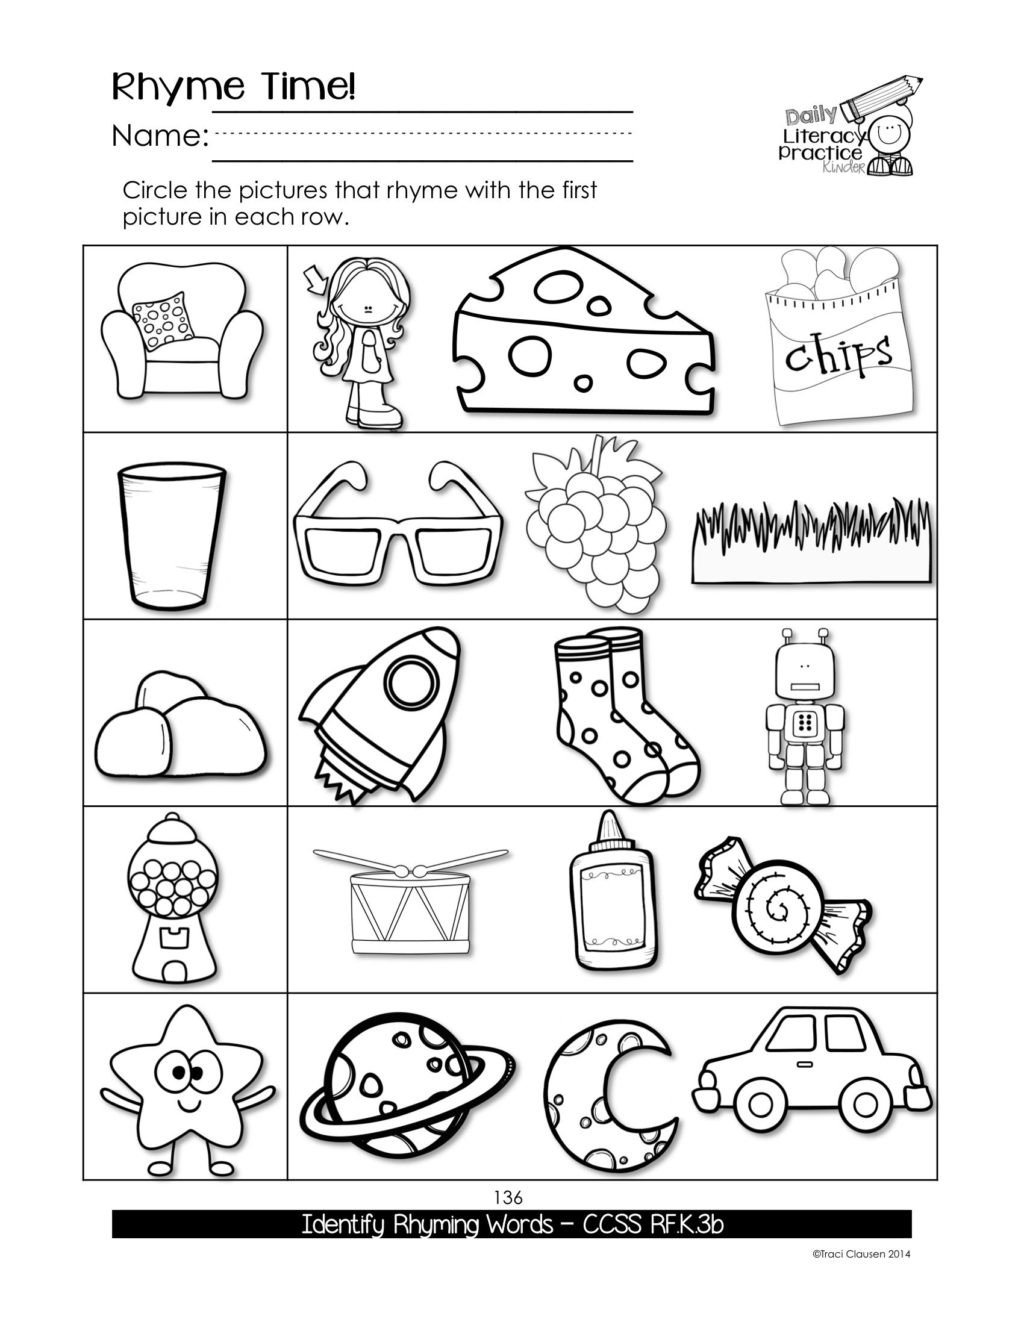 Social Studies for Kindergarten Worksheets Worksheet Worksheet Kindergarten Worksheets social Stu S